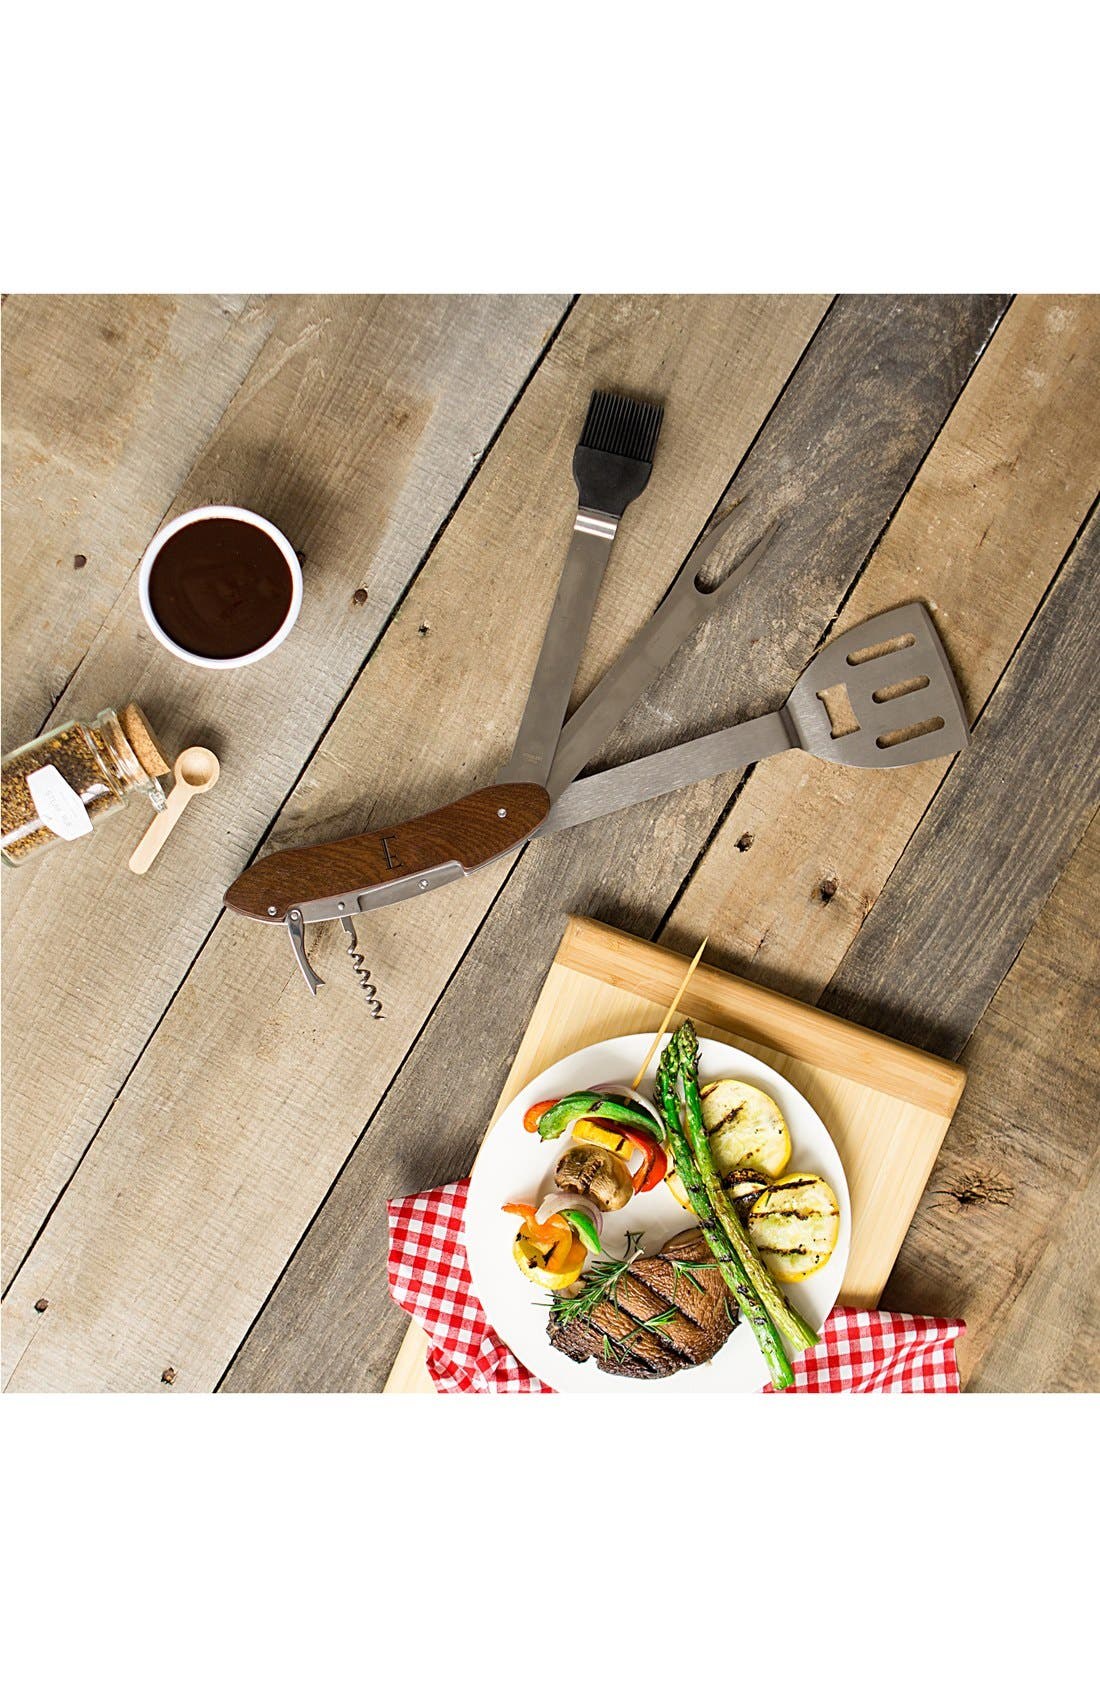 Monogram 5-in-1 Grill Tool,                             Alternate thumbnail 5, color,                             BROWN - A